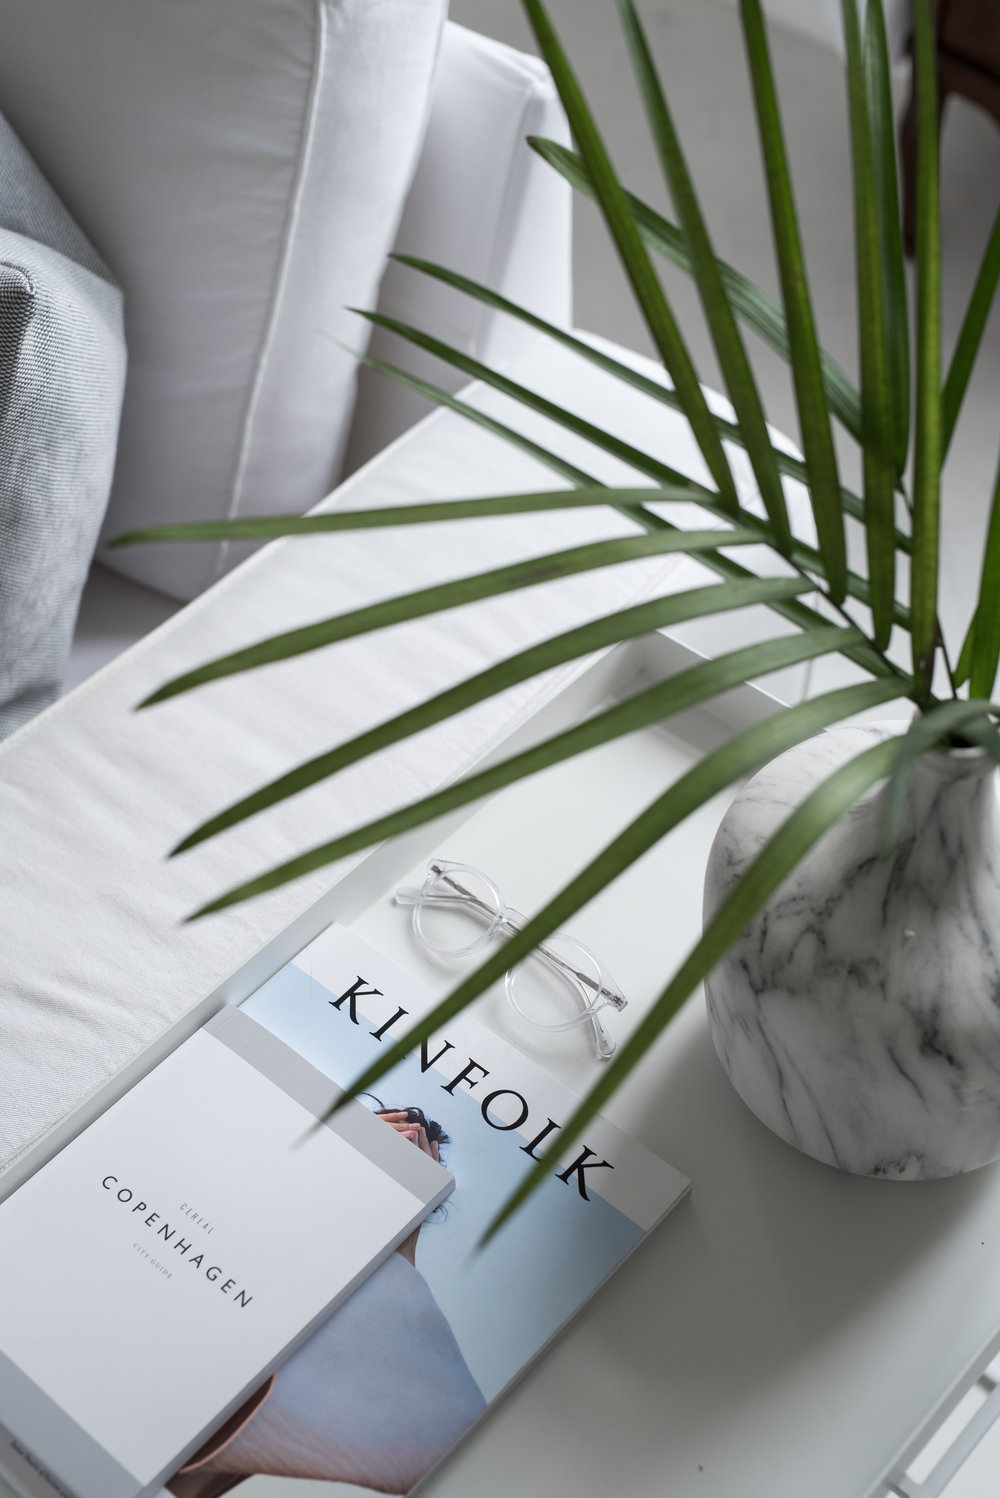 Marble Vase, Kinfolk and Eyebuydirect glasses